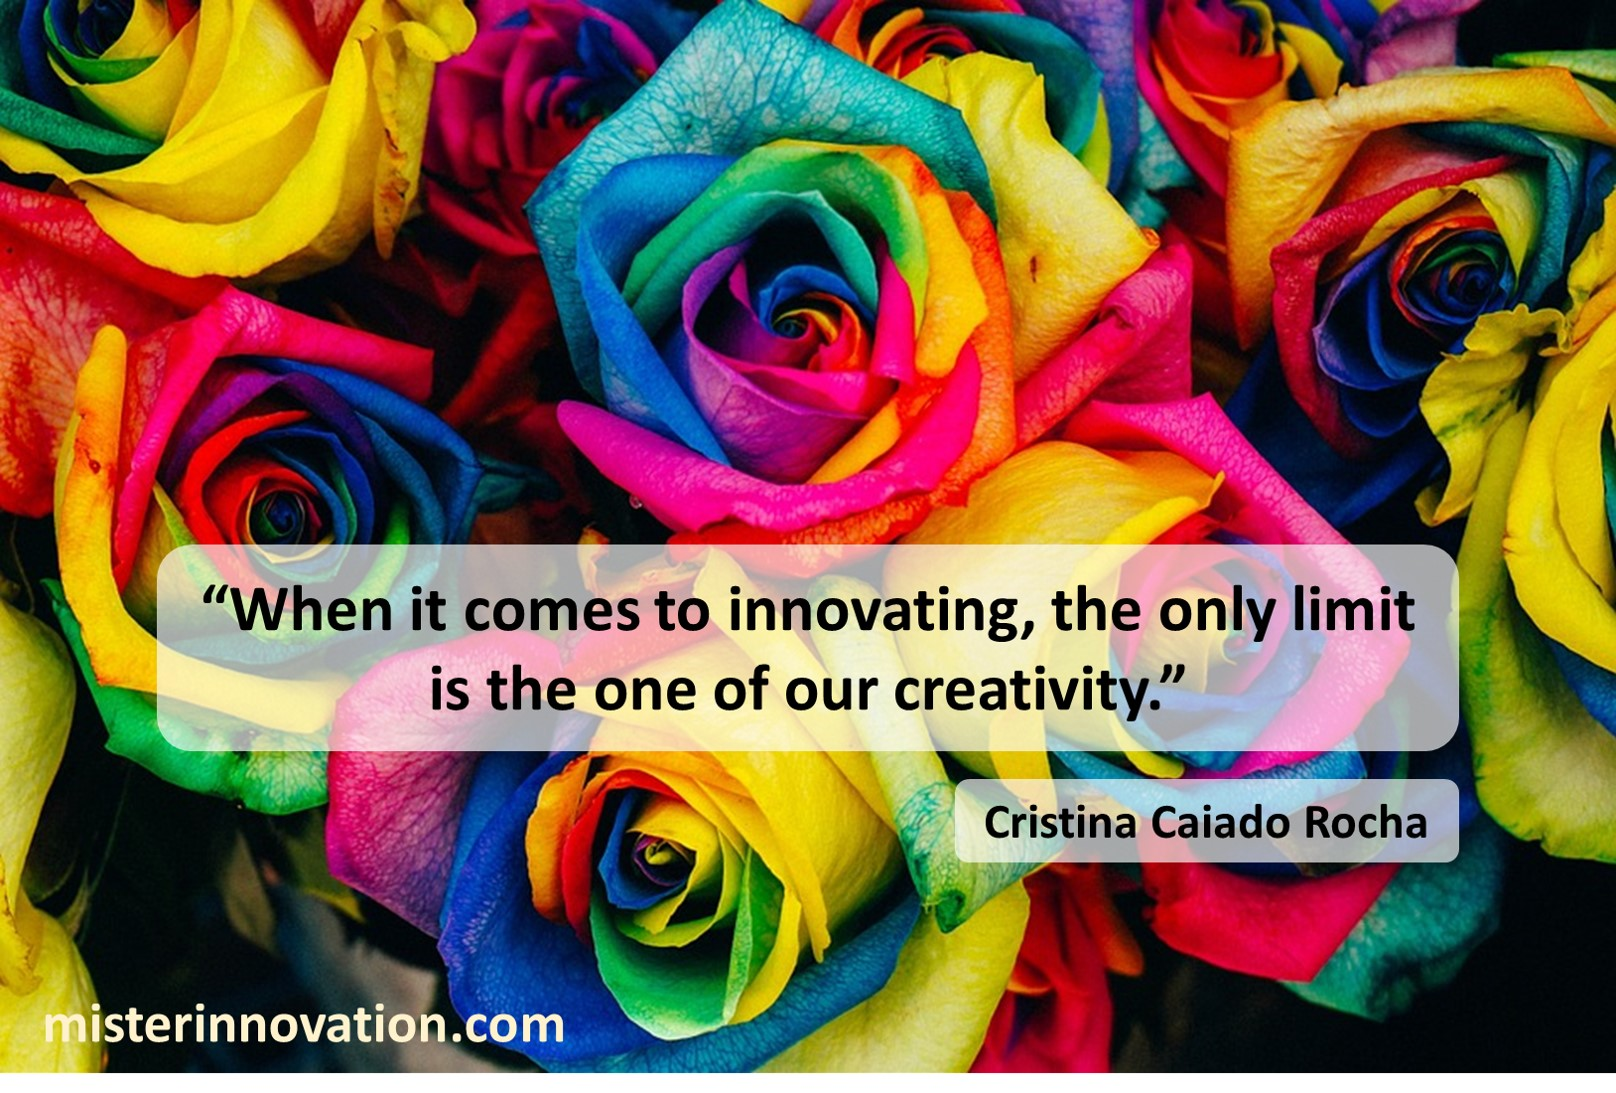 Cristina Caiado Rocha Quote on Creativity and Innovation